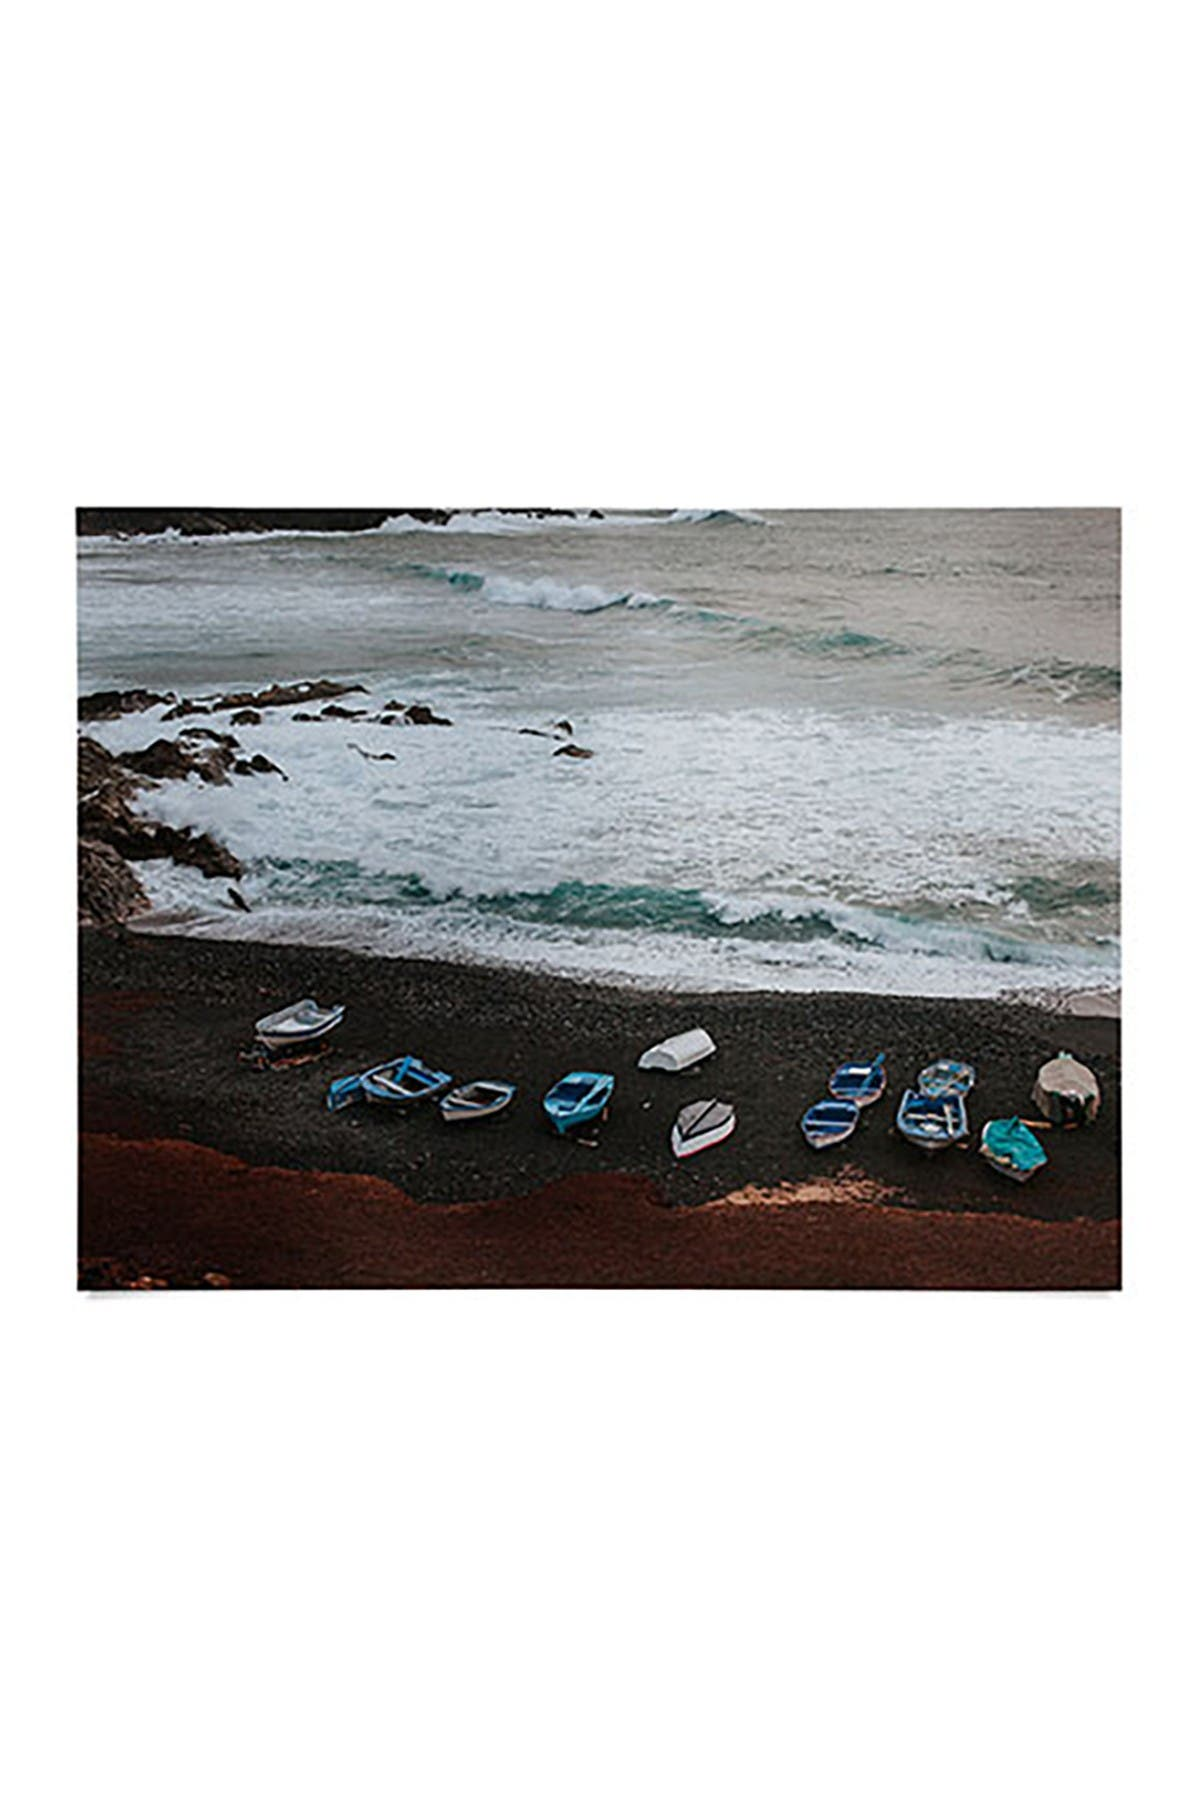 Image of Deny Designs Hello Twiggs Black Sand Boats Poster